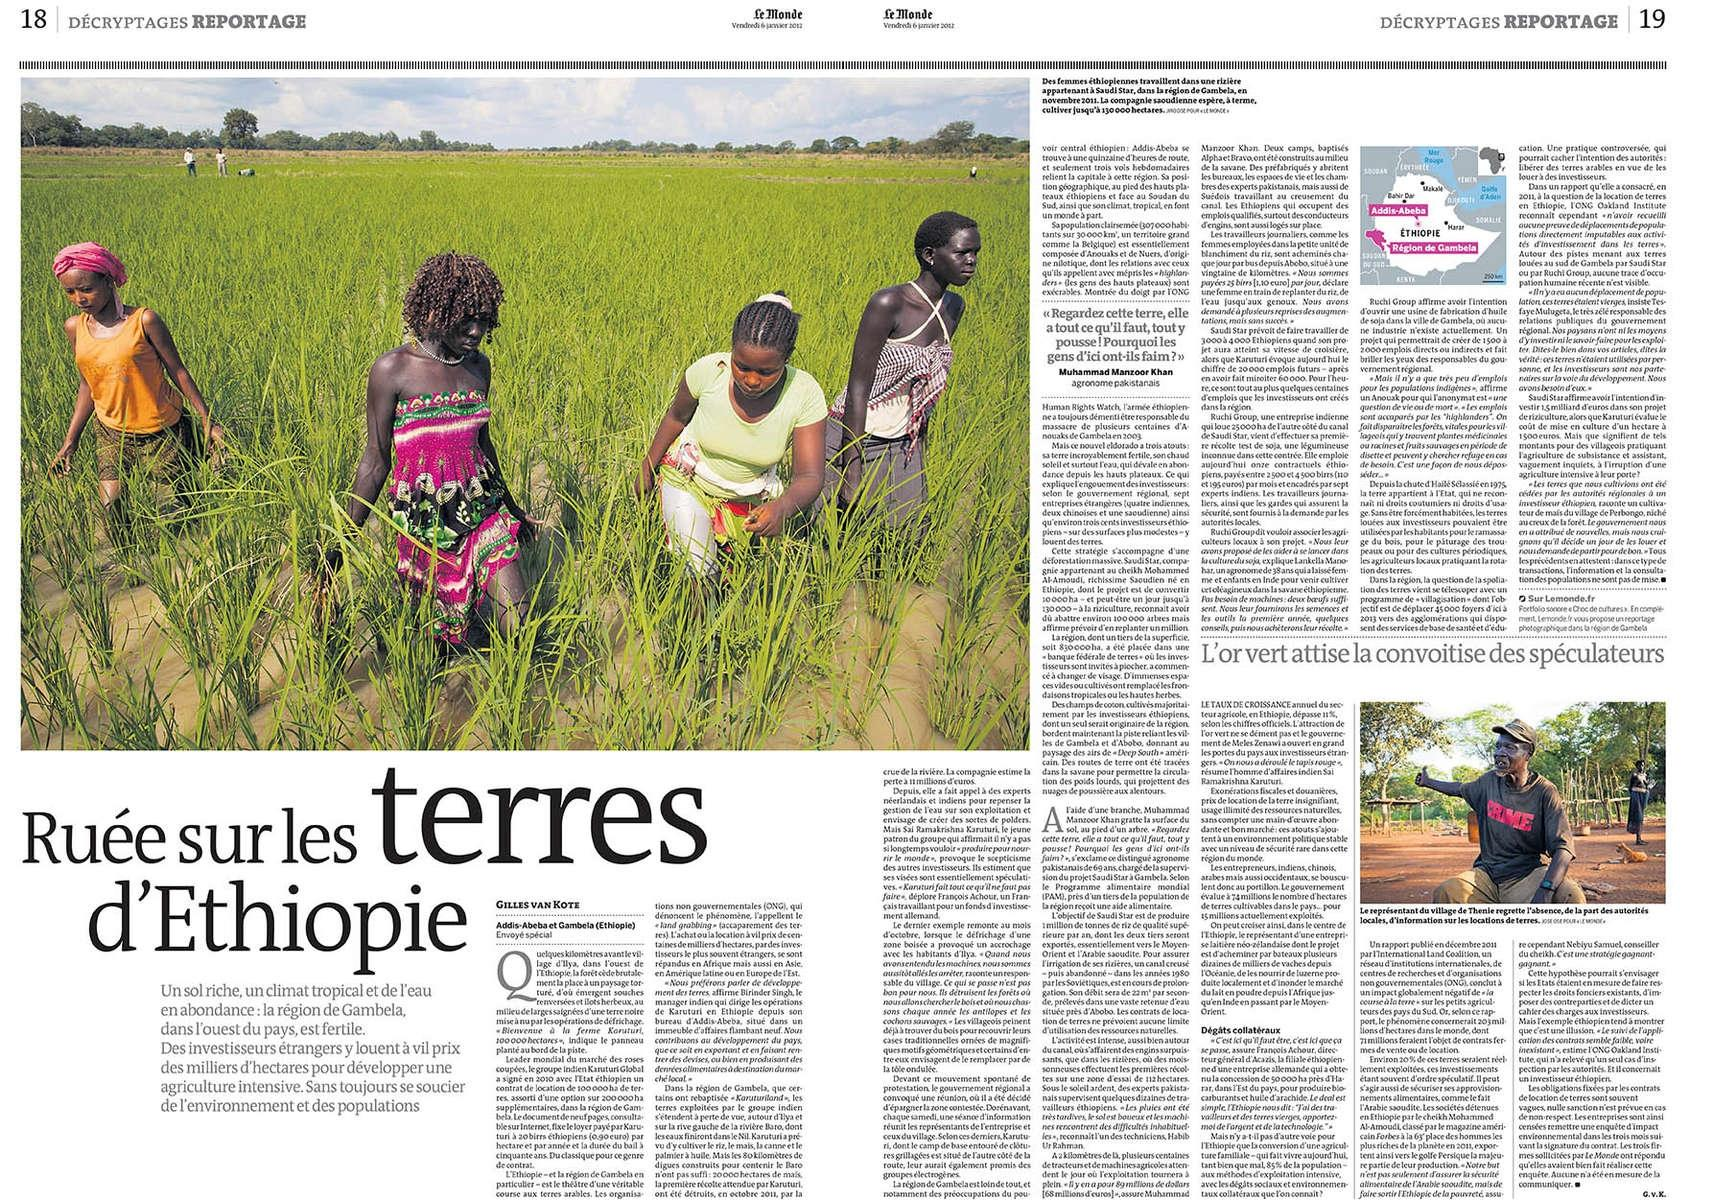 Le Monde, Land Grabbing in Africa